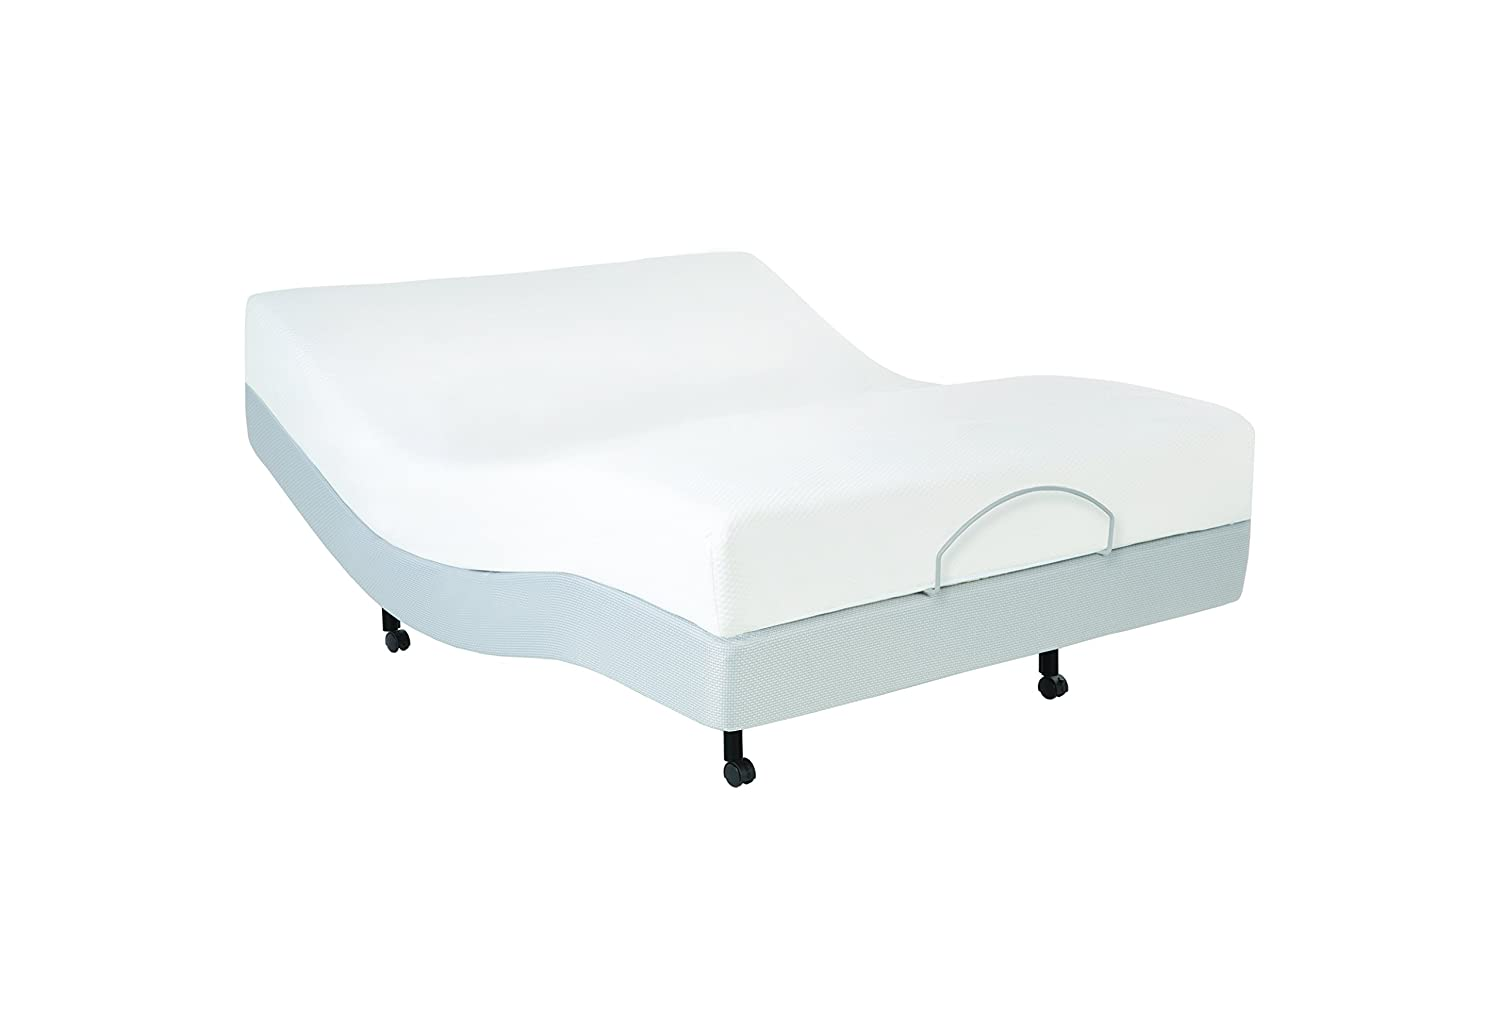 h series adjustable ann beds bed arbor